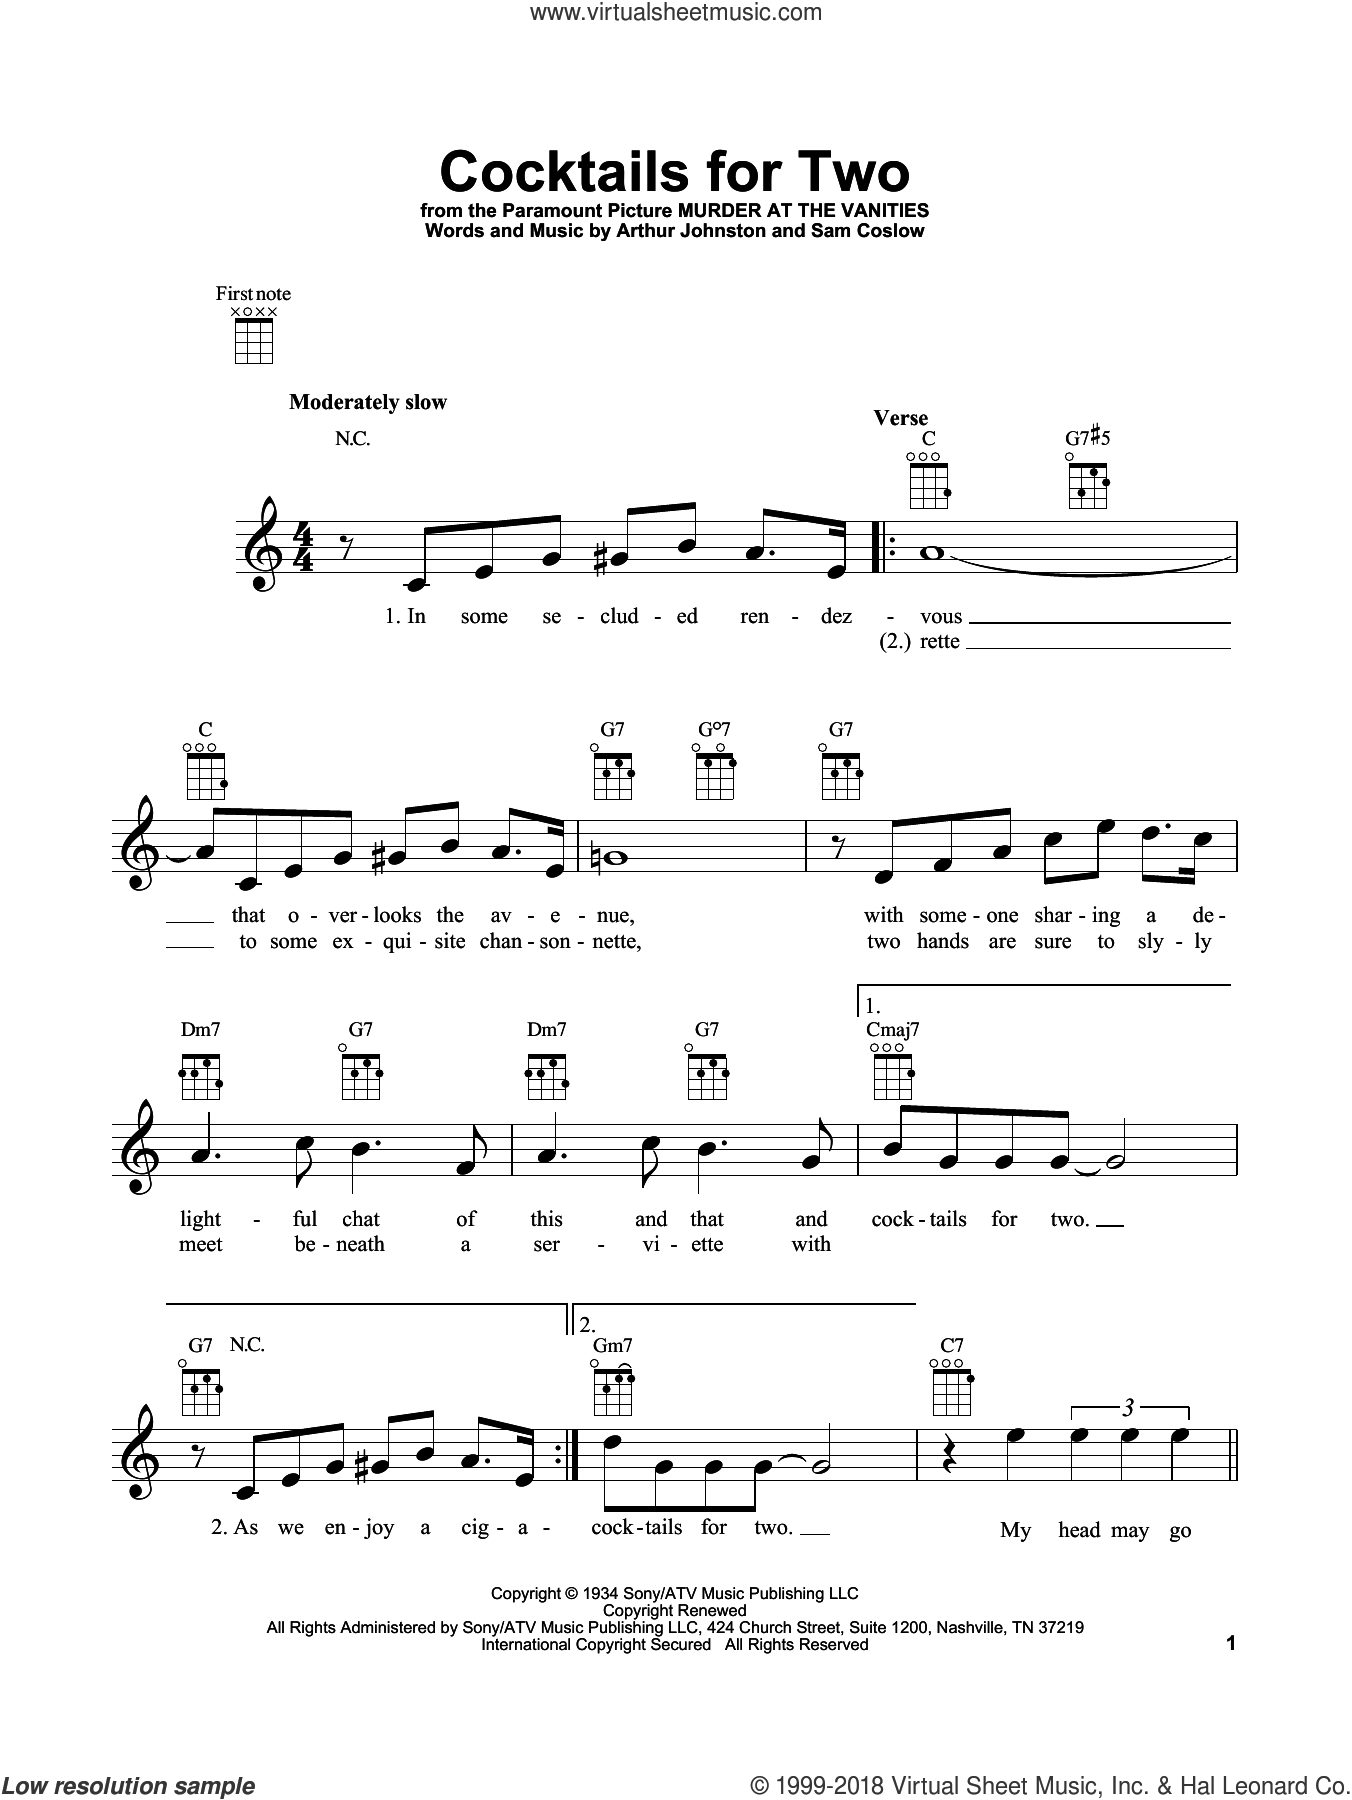 Cocktails For Two sheet music for ukulele by Arthur Johnston, Carl Brisson, Miriam Hopkins, Spike Jones & The City Slickers and Sam Coslow, intermediate skill level